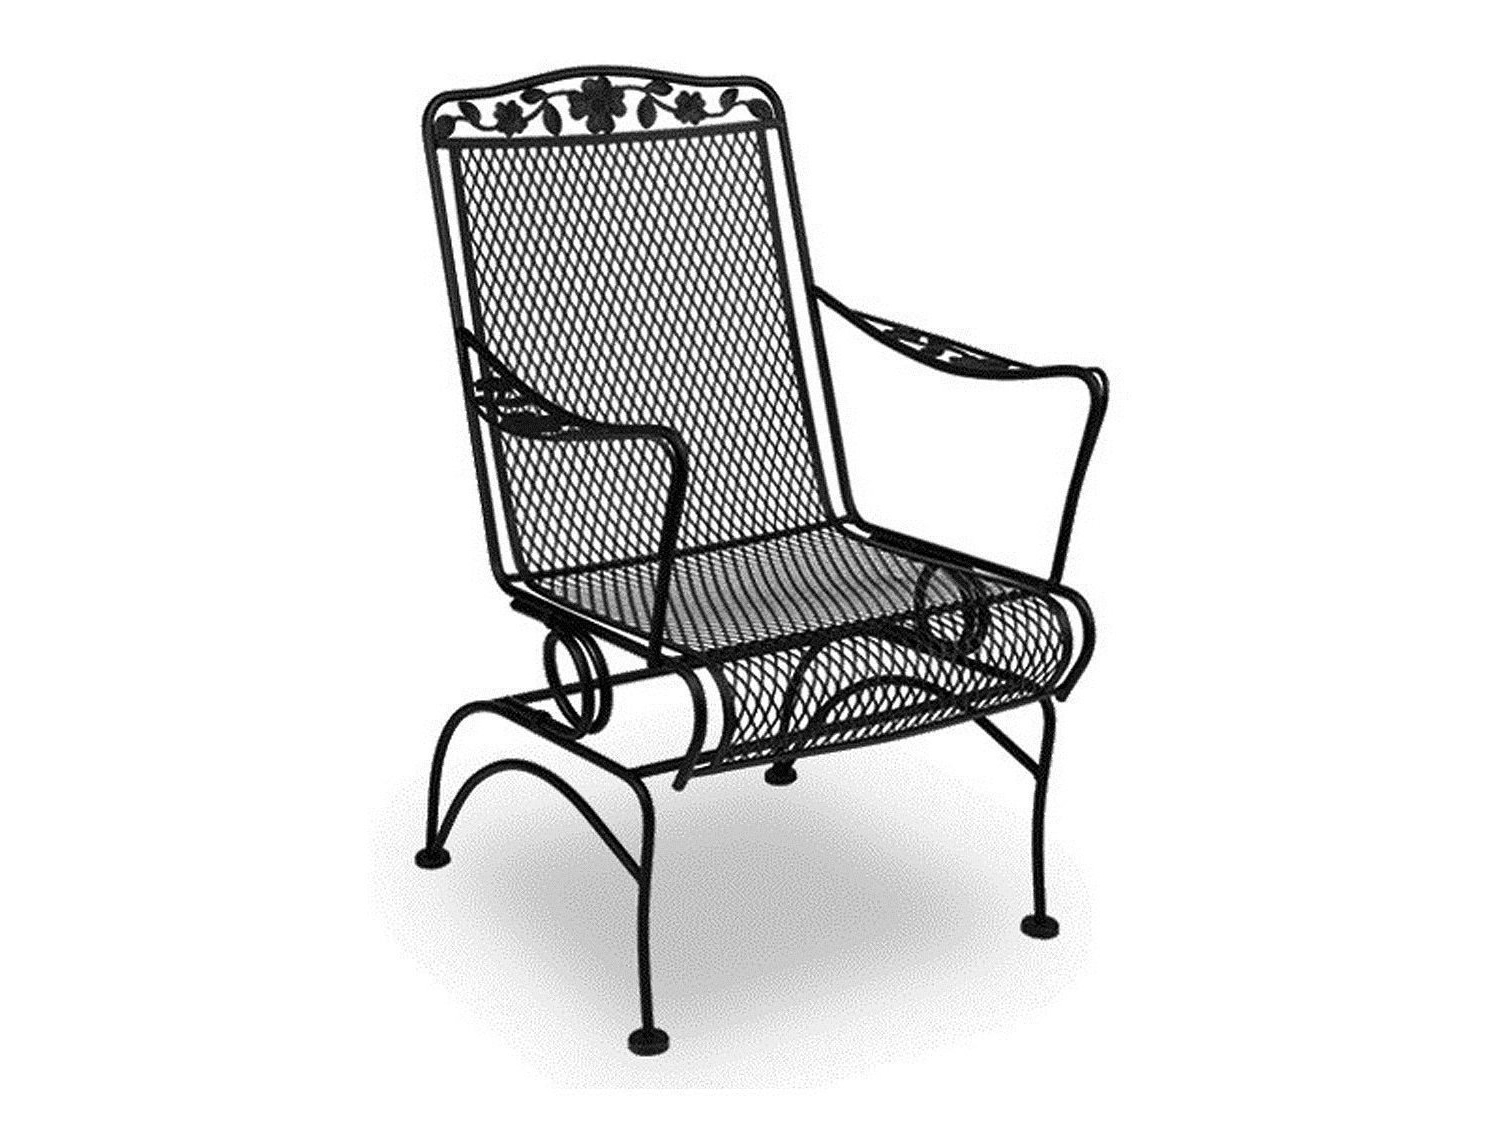 Iron Rocking Patio Chairs Regarding Preferred Wrought Iron Rocking Chair Patio Furniture Design Ideas – Arelisapril (View 8 of 15)